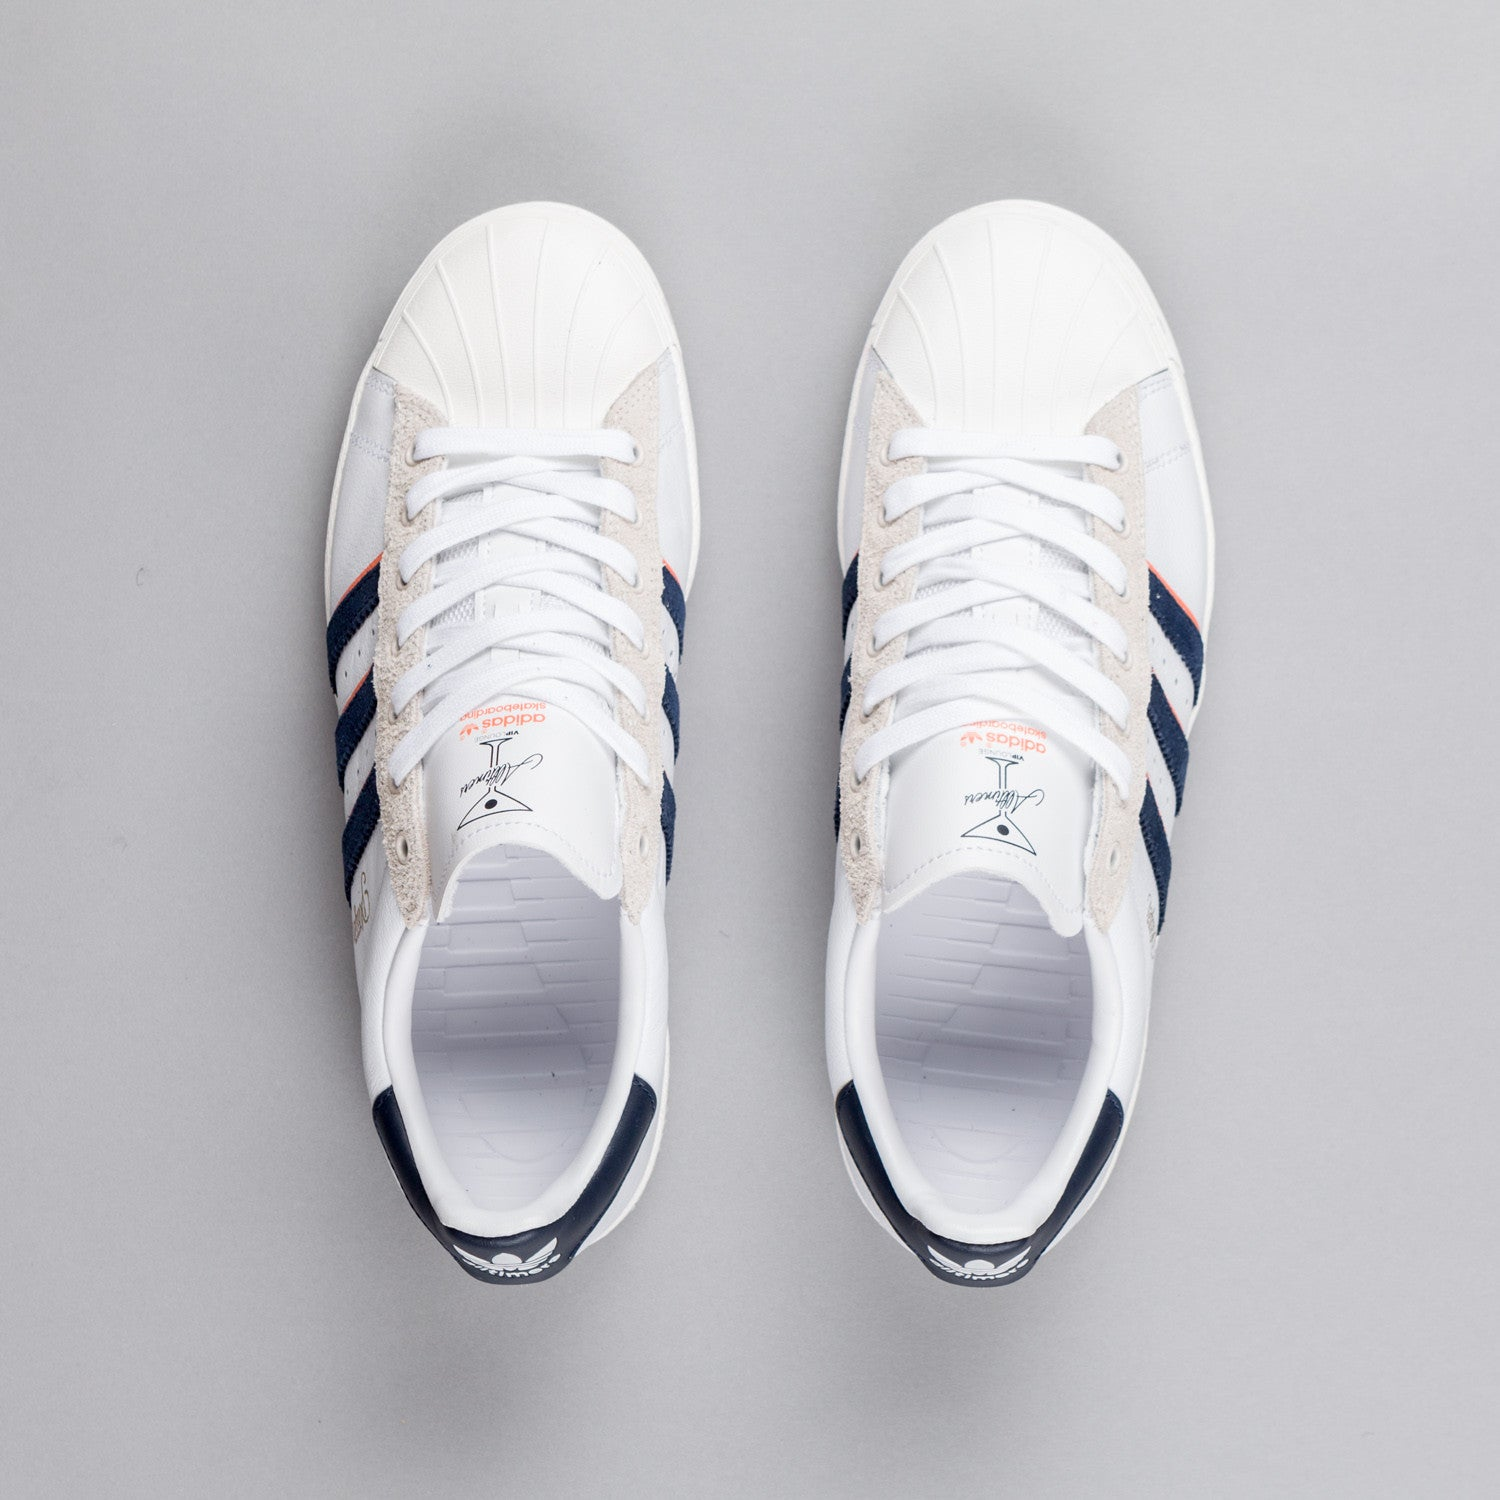 Adidas Superstar Vulc x Alltimers Shoes - White / Navy / St Tropic Melon